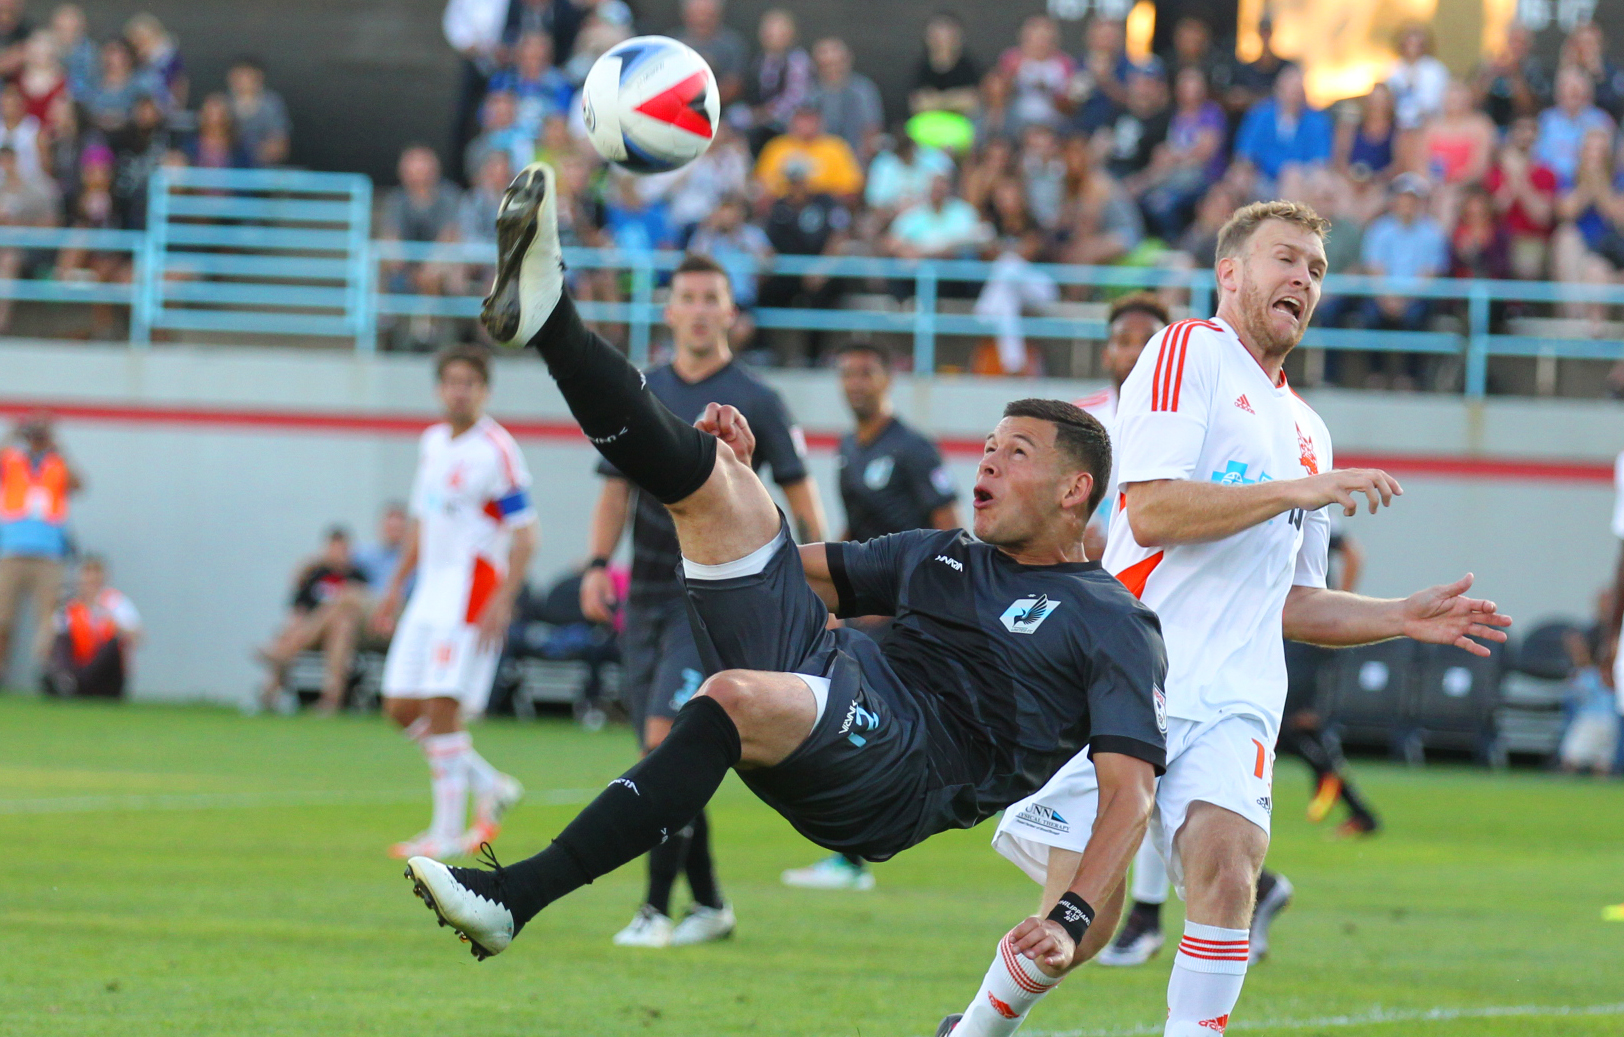 Christian Ramirez Minnesota United